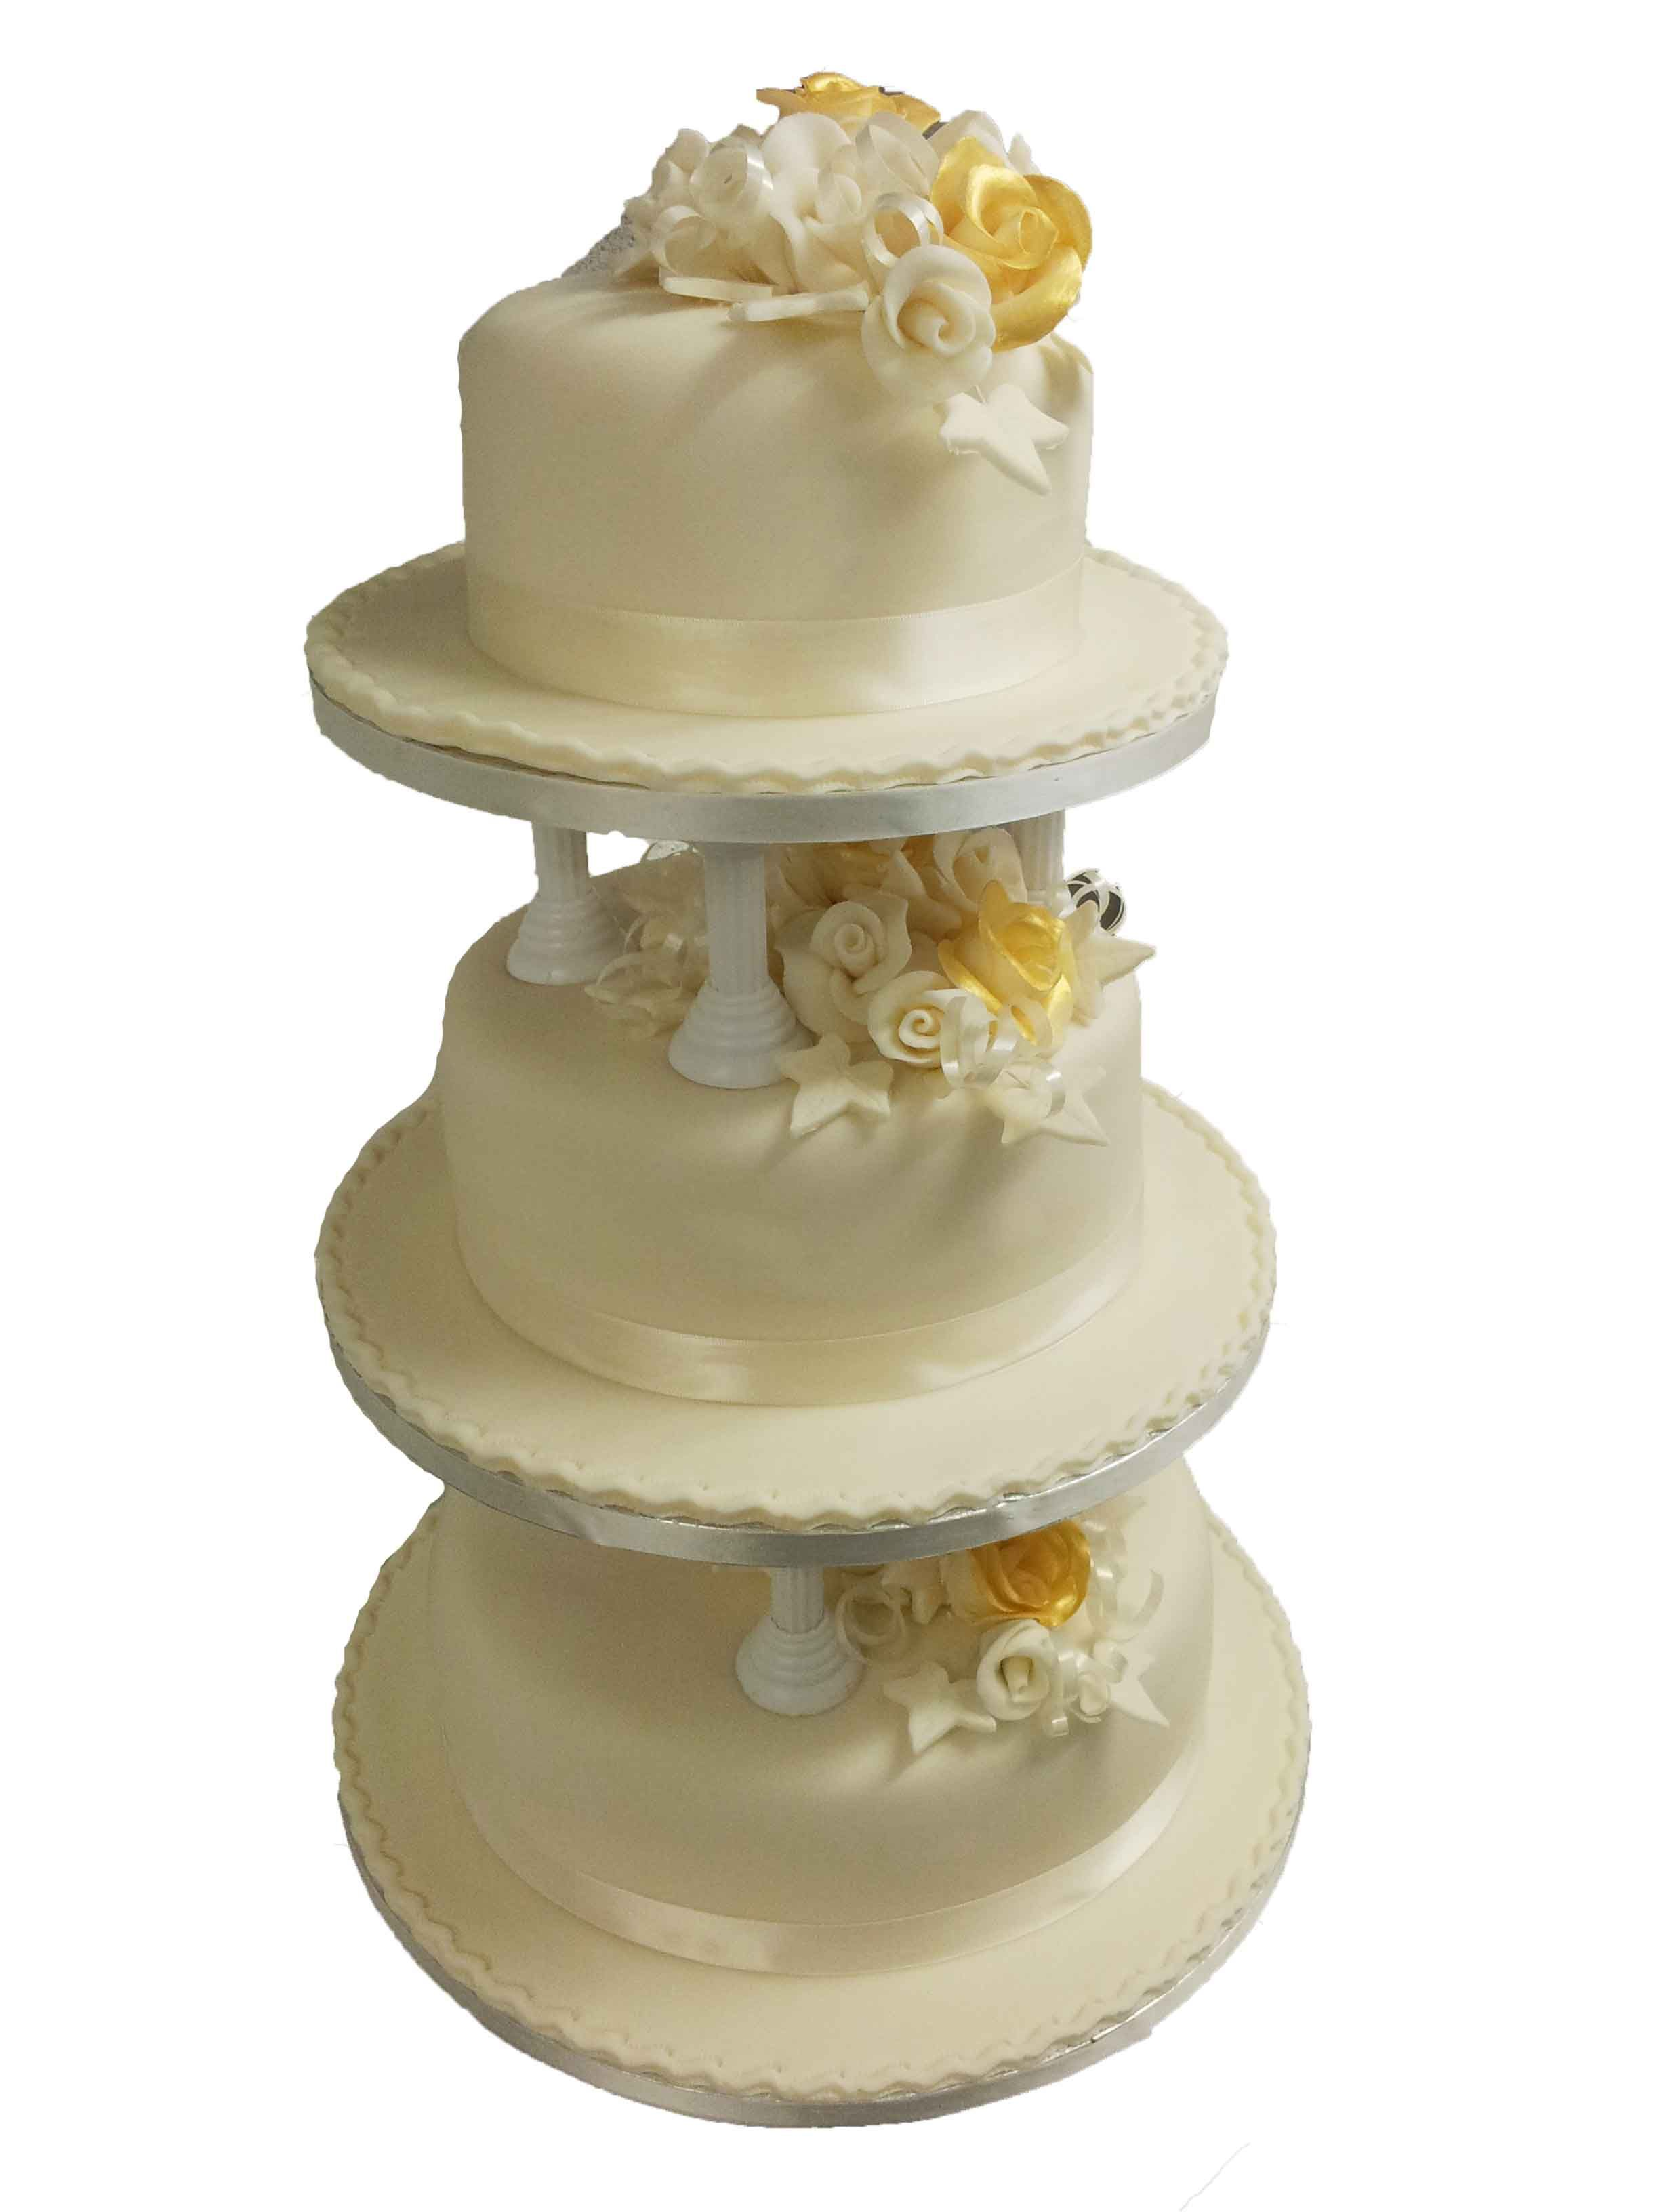 Personalised Wedding Cake Specialist Based In West London Offering Superb Style And Impressive Speed